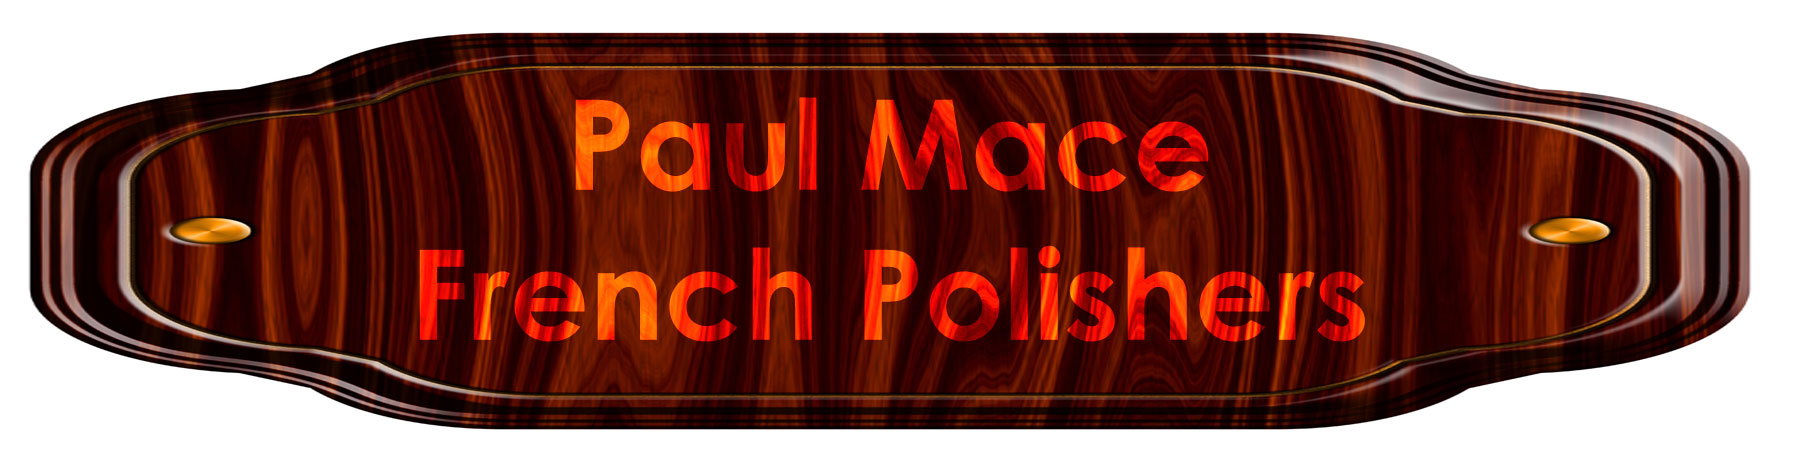 paul mace french polisher